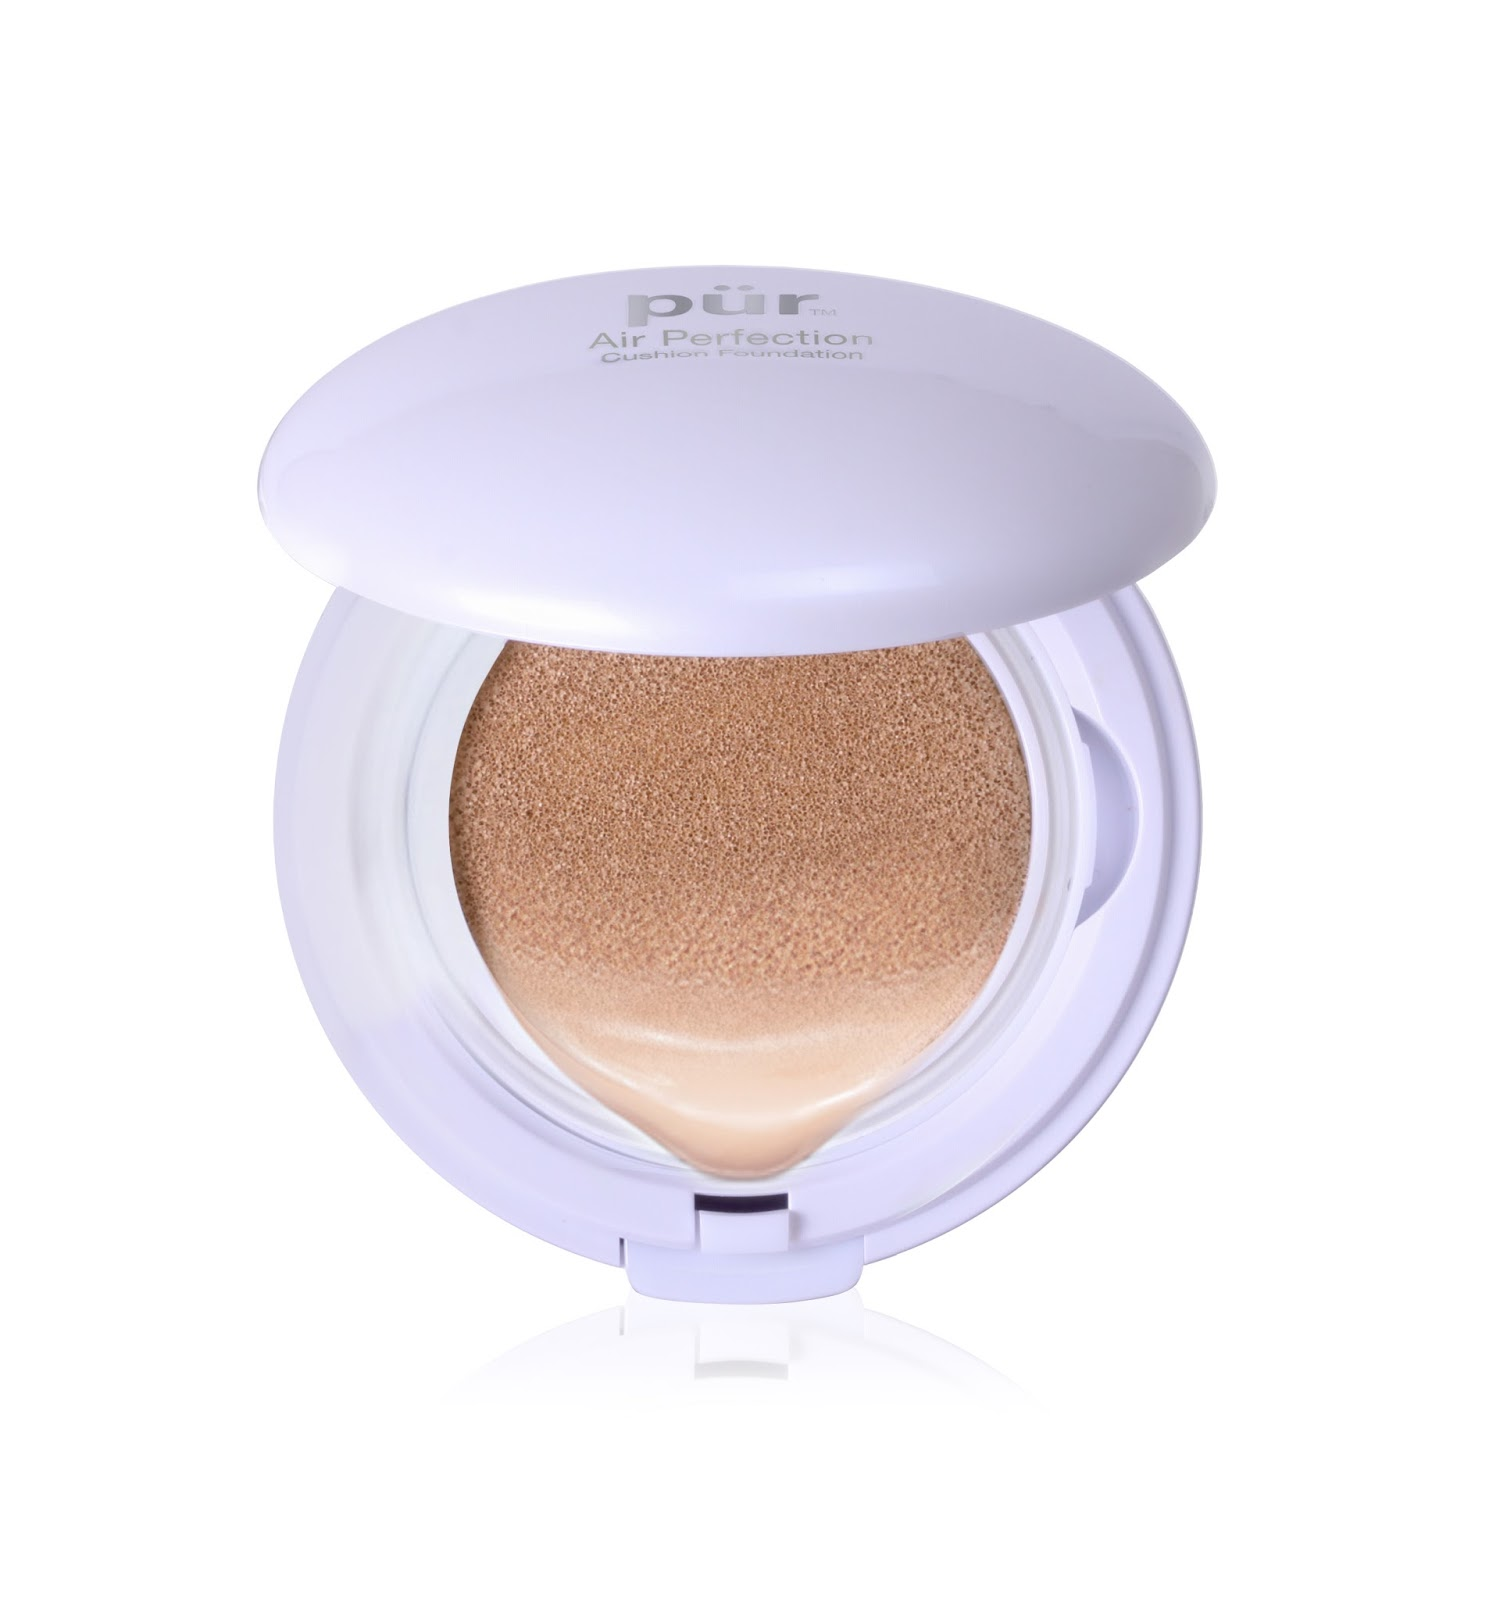 http://www.purminerals.com/Air-Perfection-CC-Cushion-Compact-Foundation